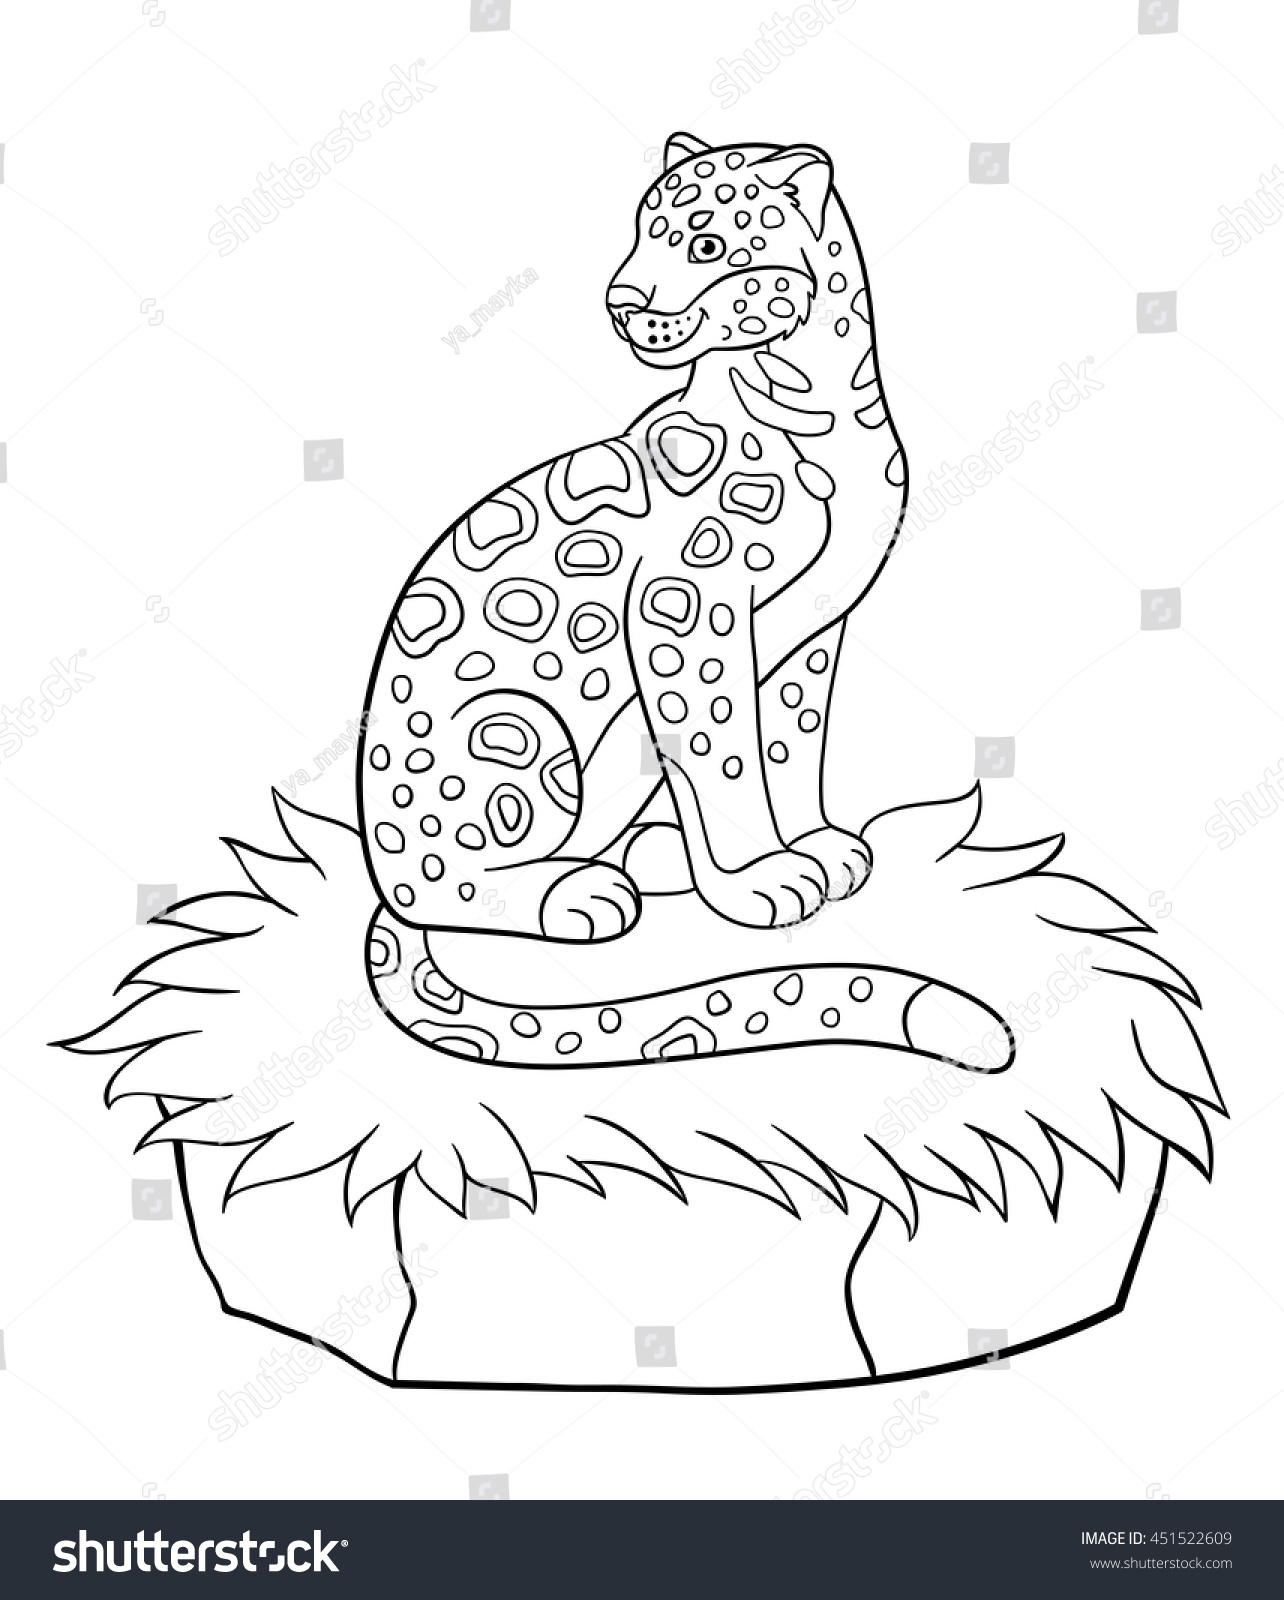 Coloring Pages Cute Spotted Jaguar Sits On The Grass And Smiles